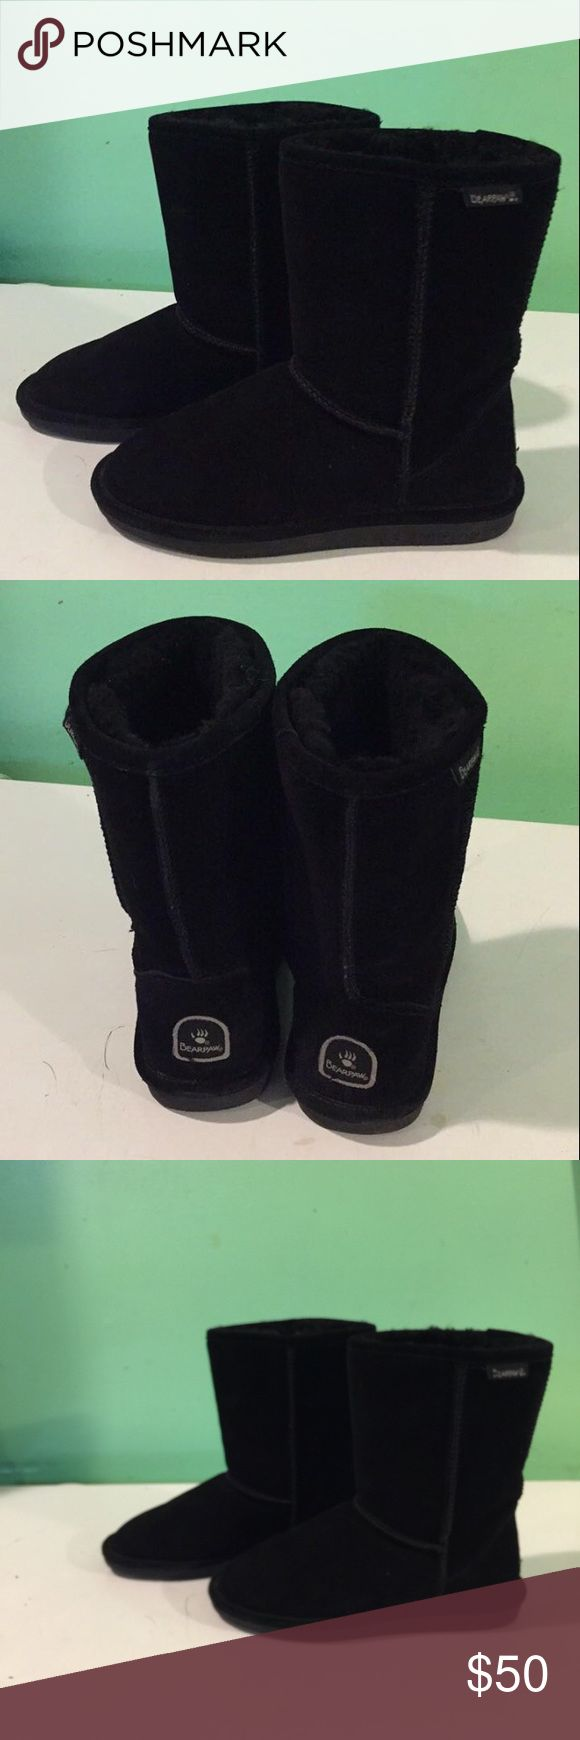 Bear paw boots Black beer paw boots BearPaw Shoes Winter & Rain Boots